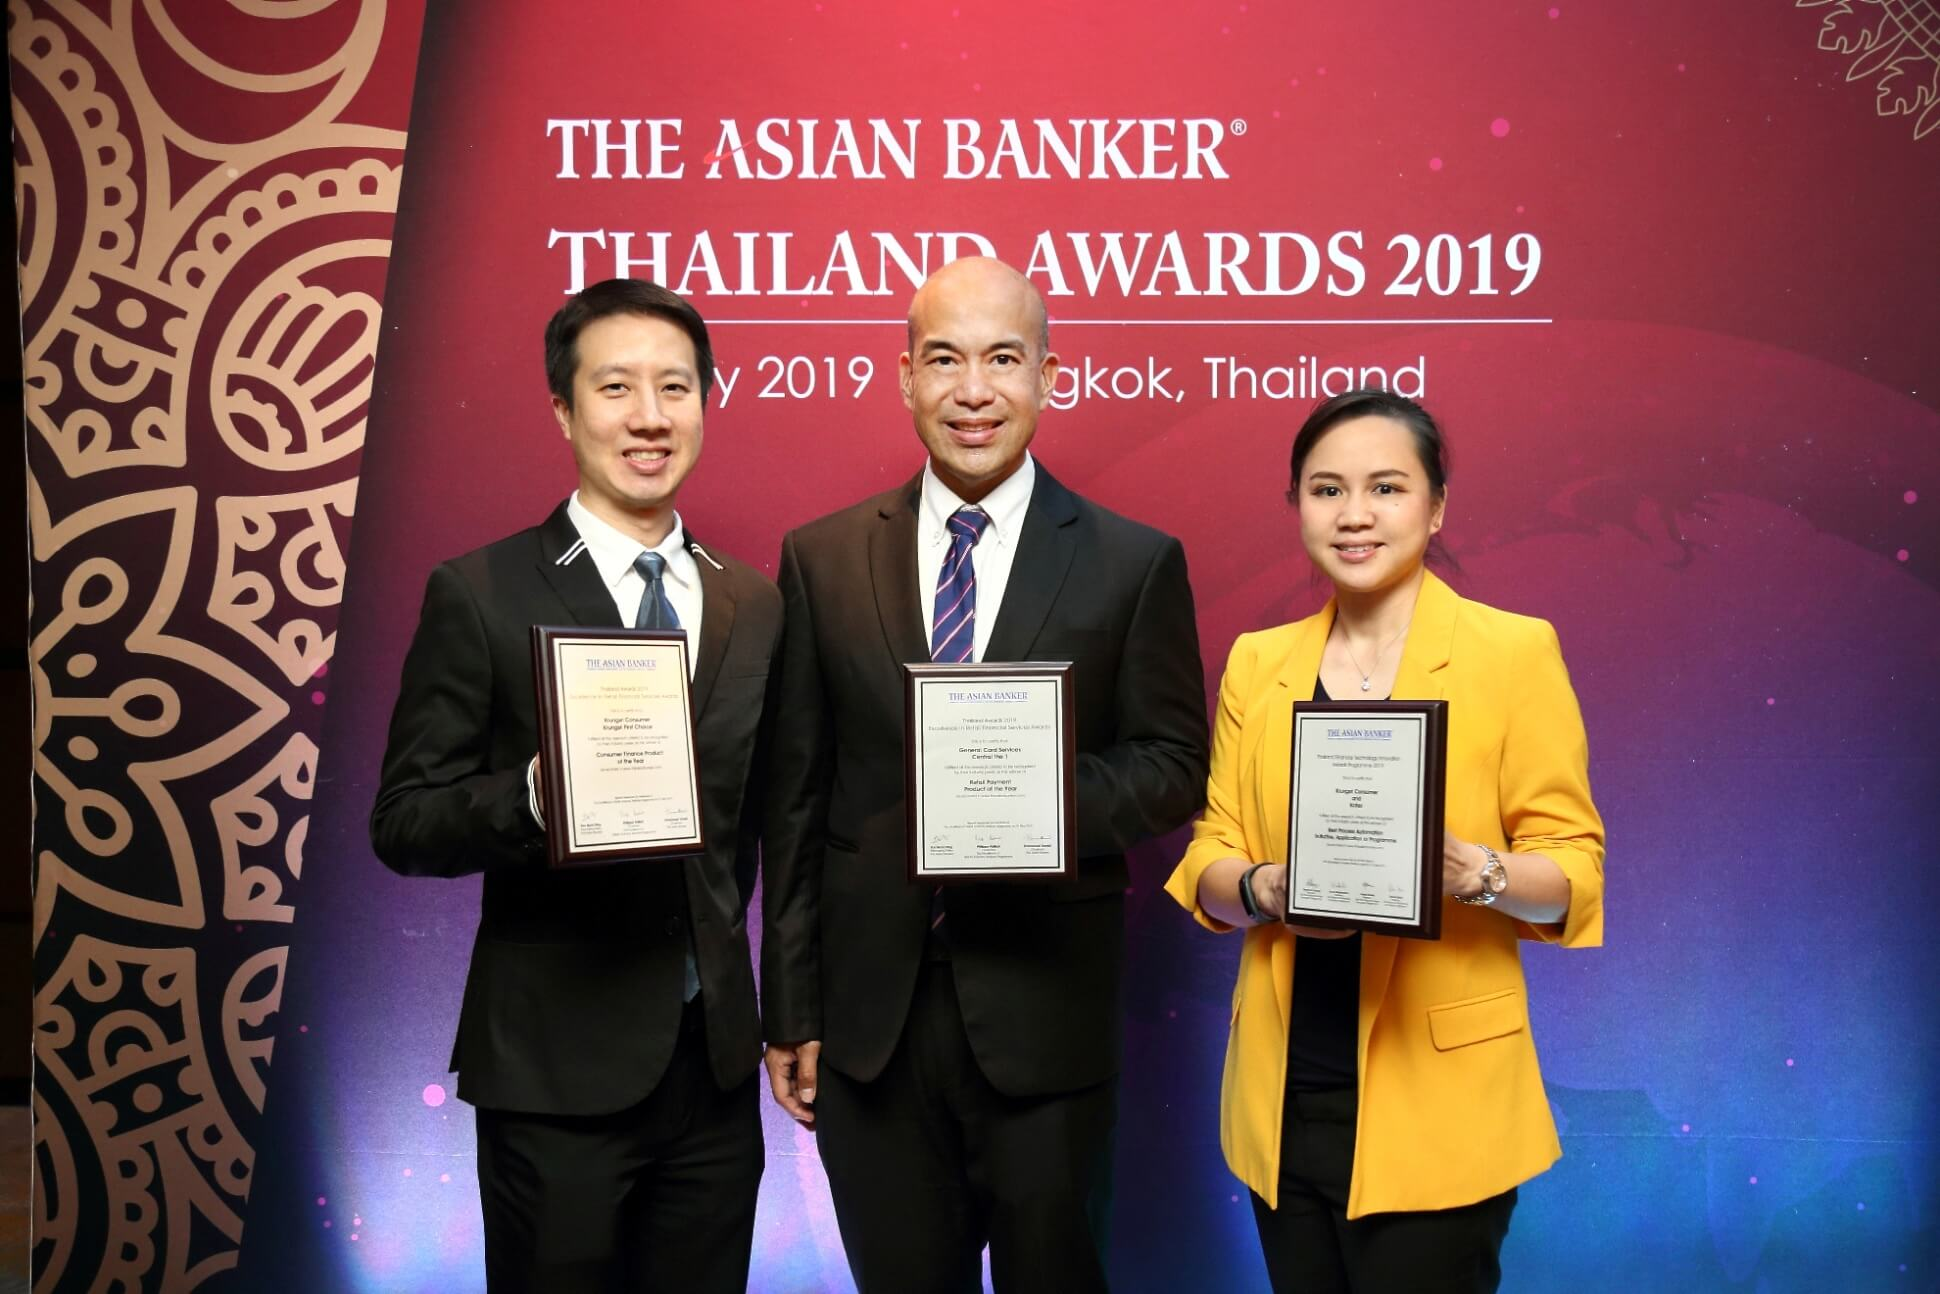 The Asian Banker : Thailand Country Awards 2019